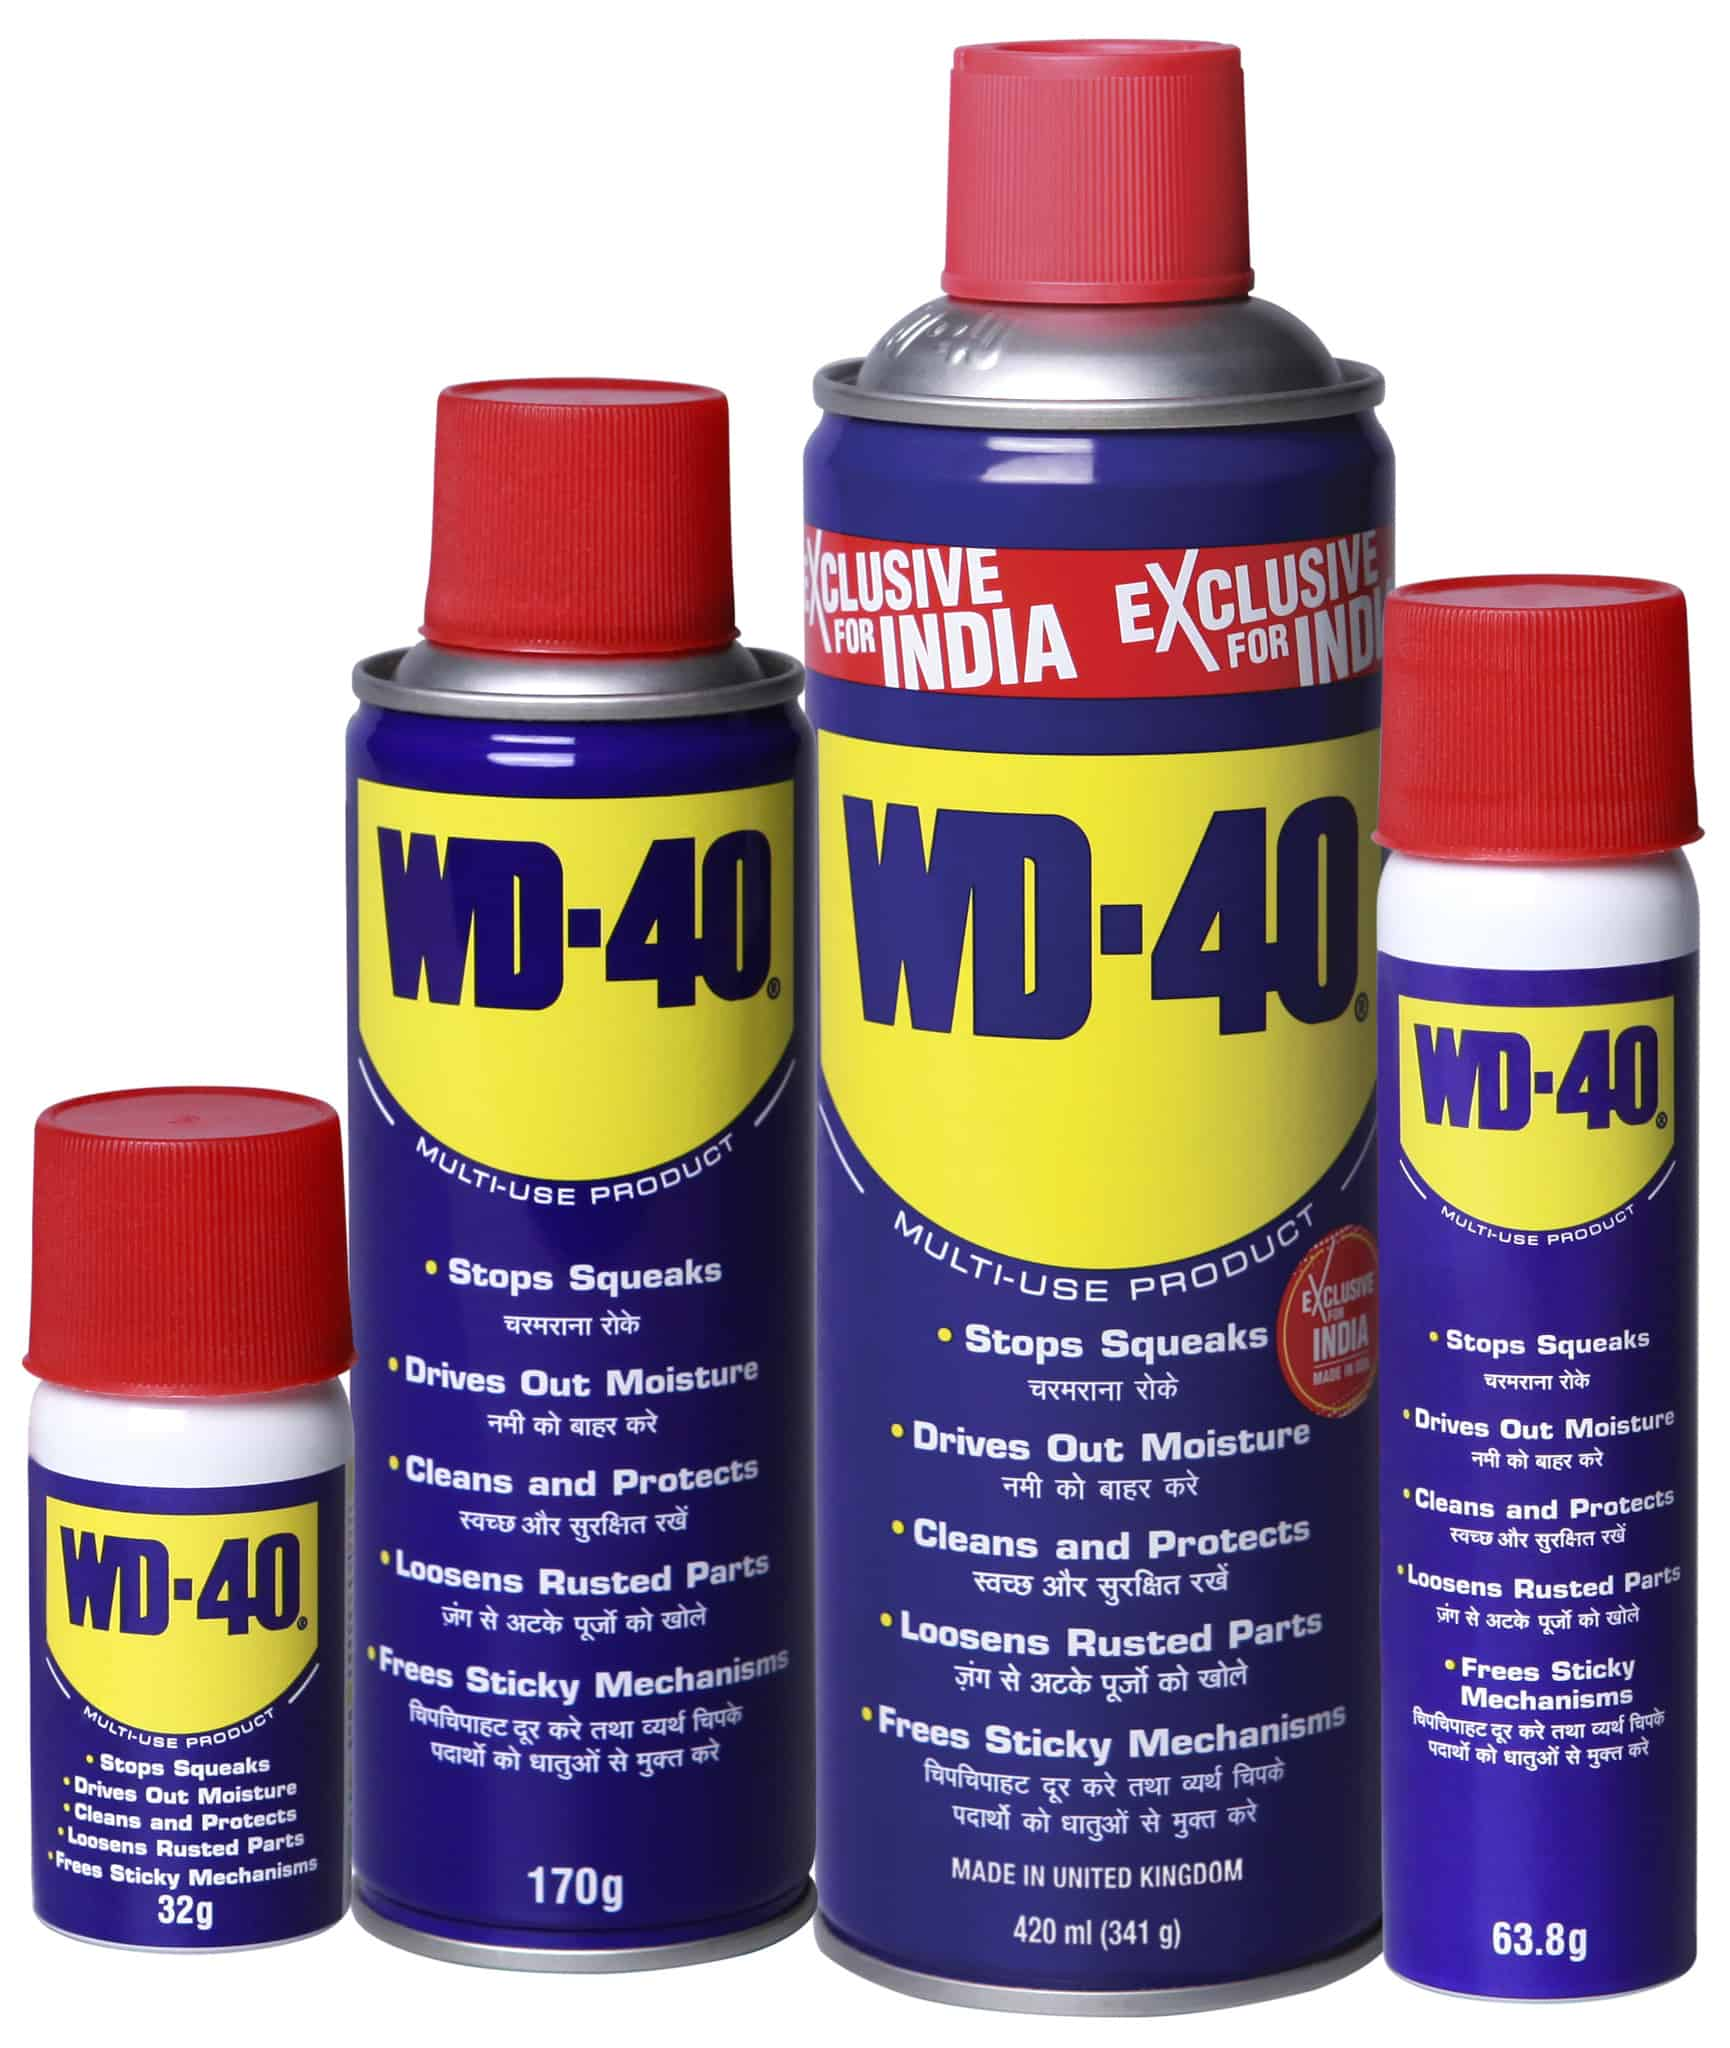 Start the New Year Off With WD-40!